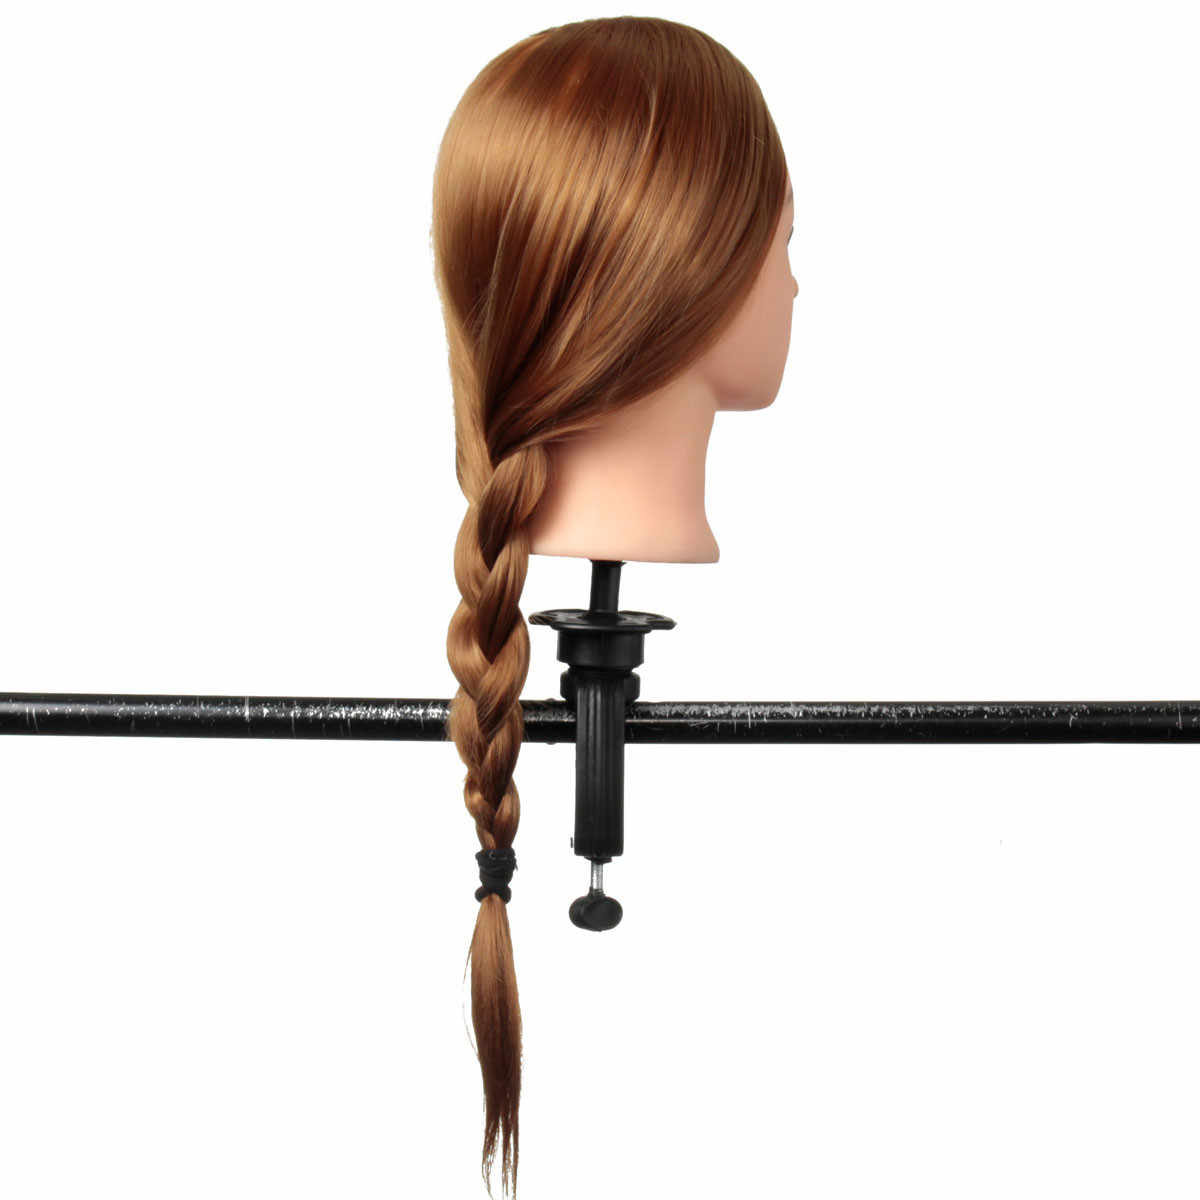 24 inch 30% Real Natural Hair Training Mannequin Head With Stand Holder For Hairstyles Professional Practice Wig Head Women